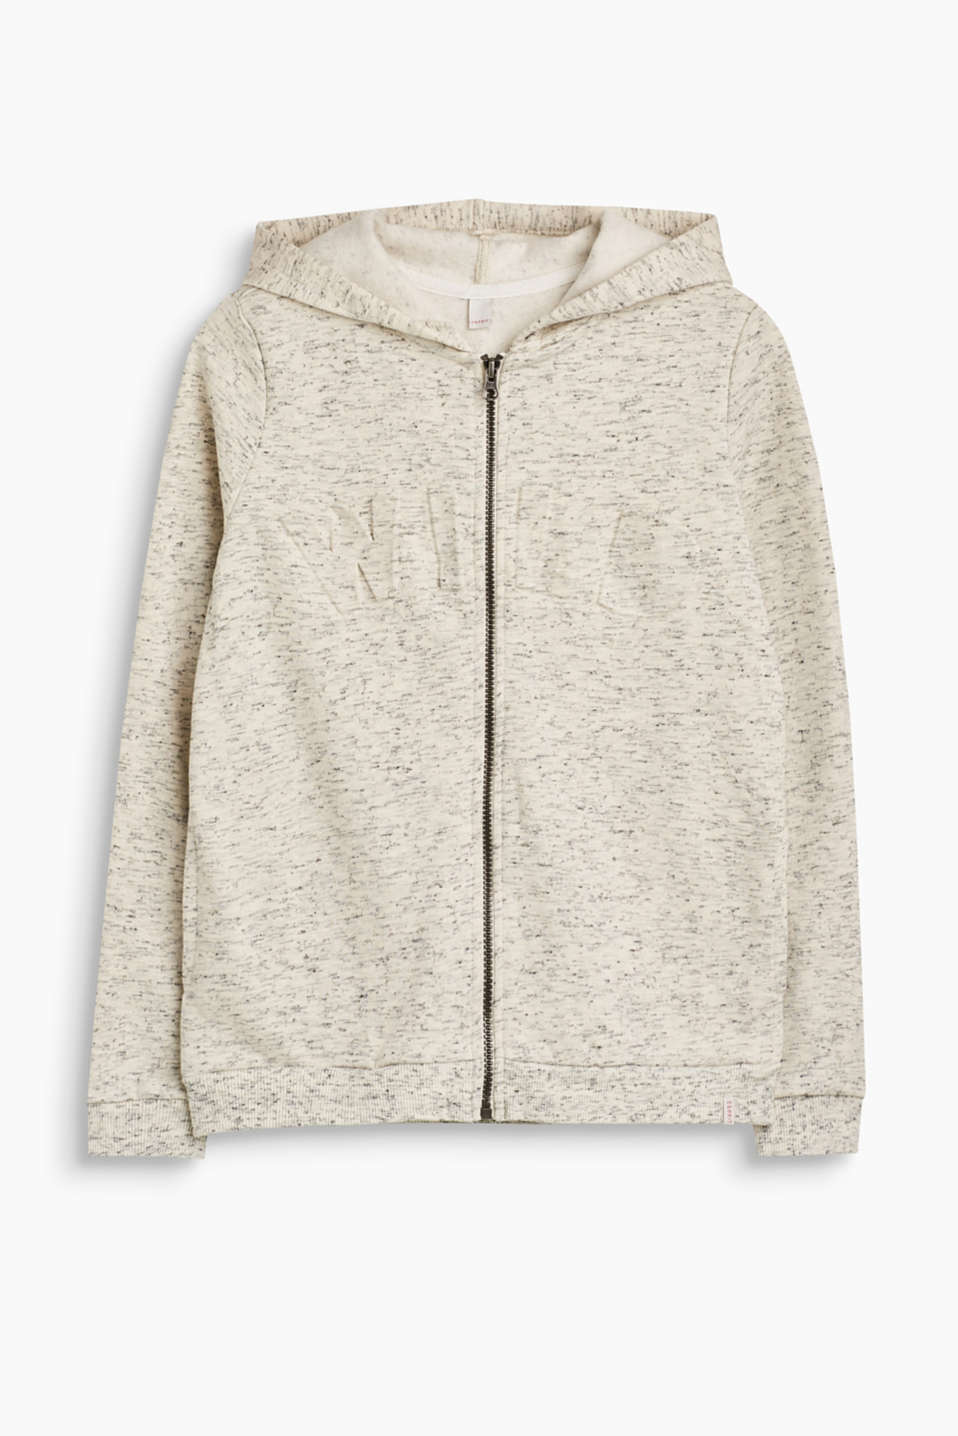 Go wild! This melange hooded sweatshirt with a fluffy inner surface is just the thing for wild explorers.